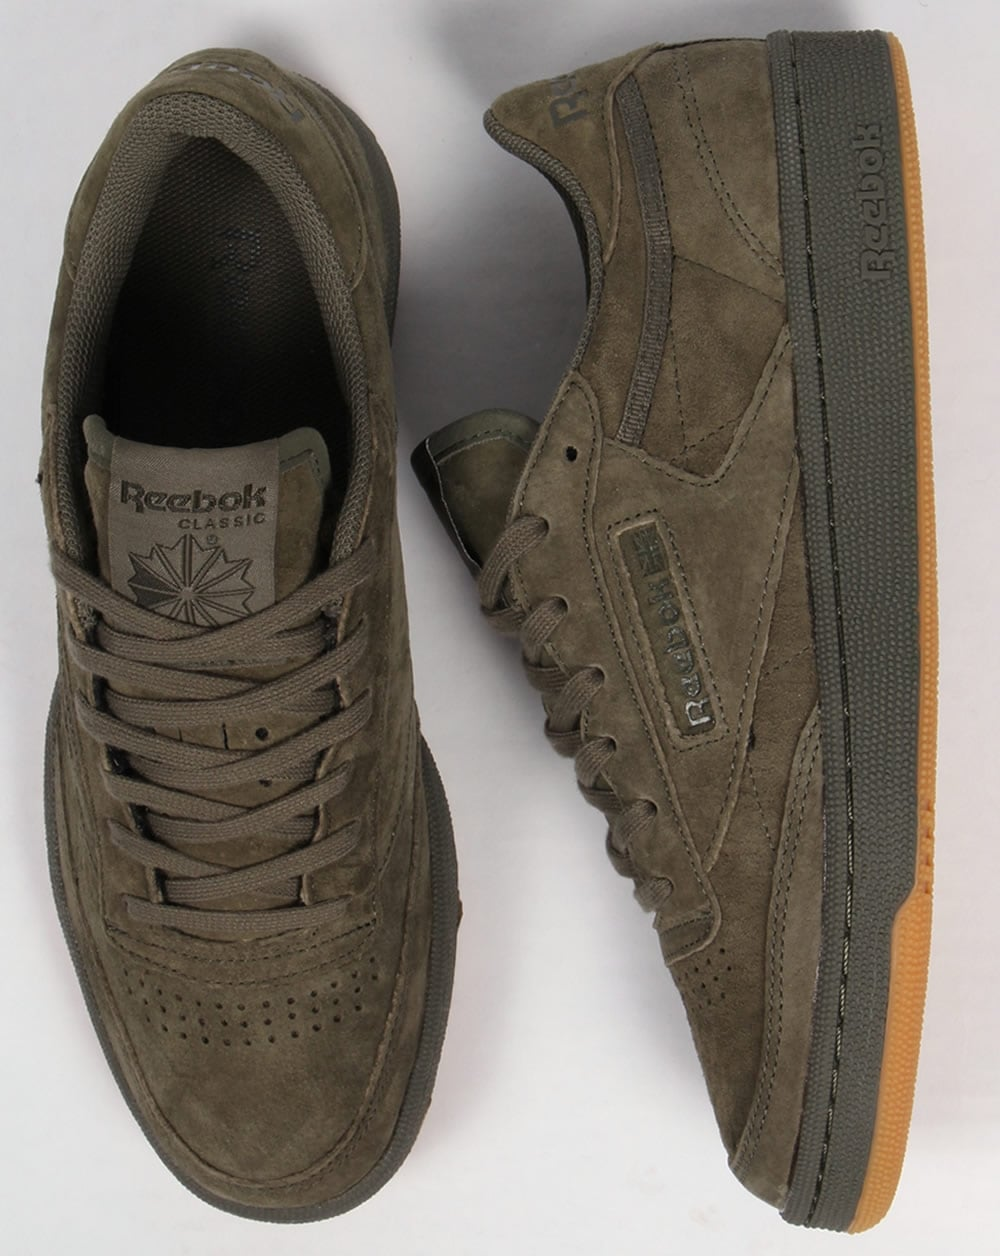 095bed568 Reebok Club C 85 Trainers Hunter Green,shoe,gum,suede,mens